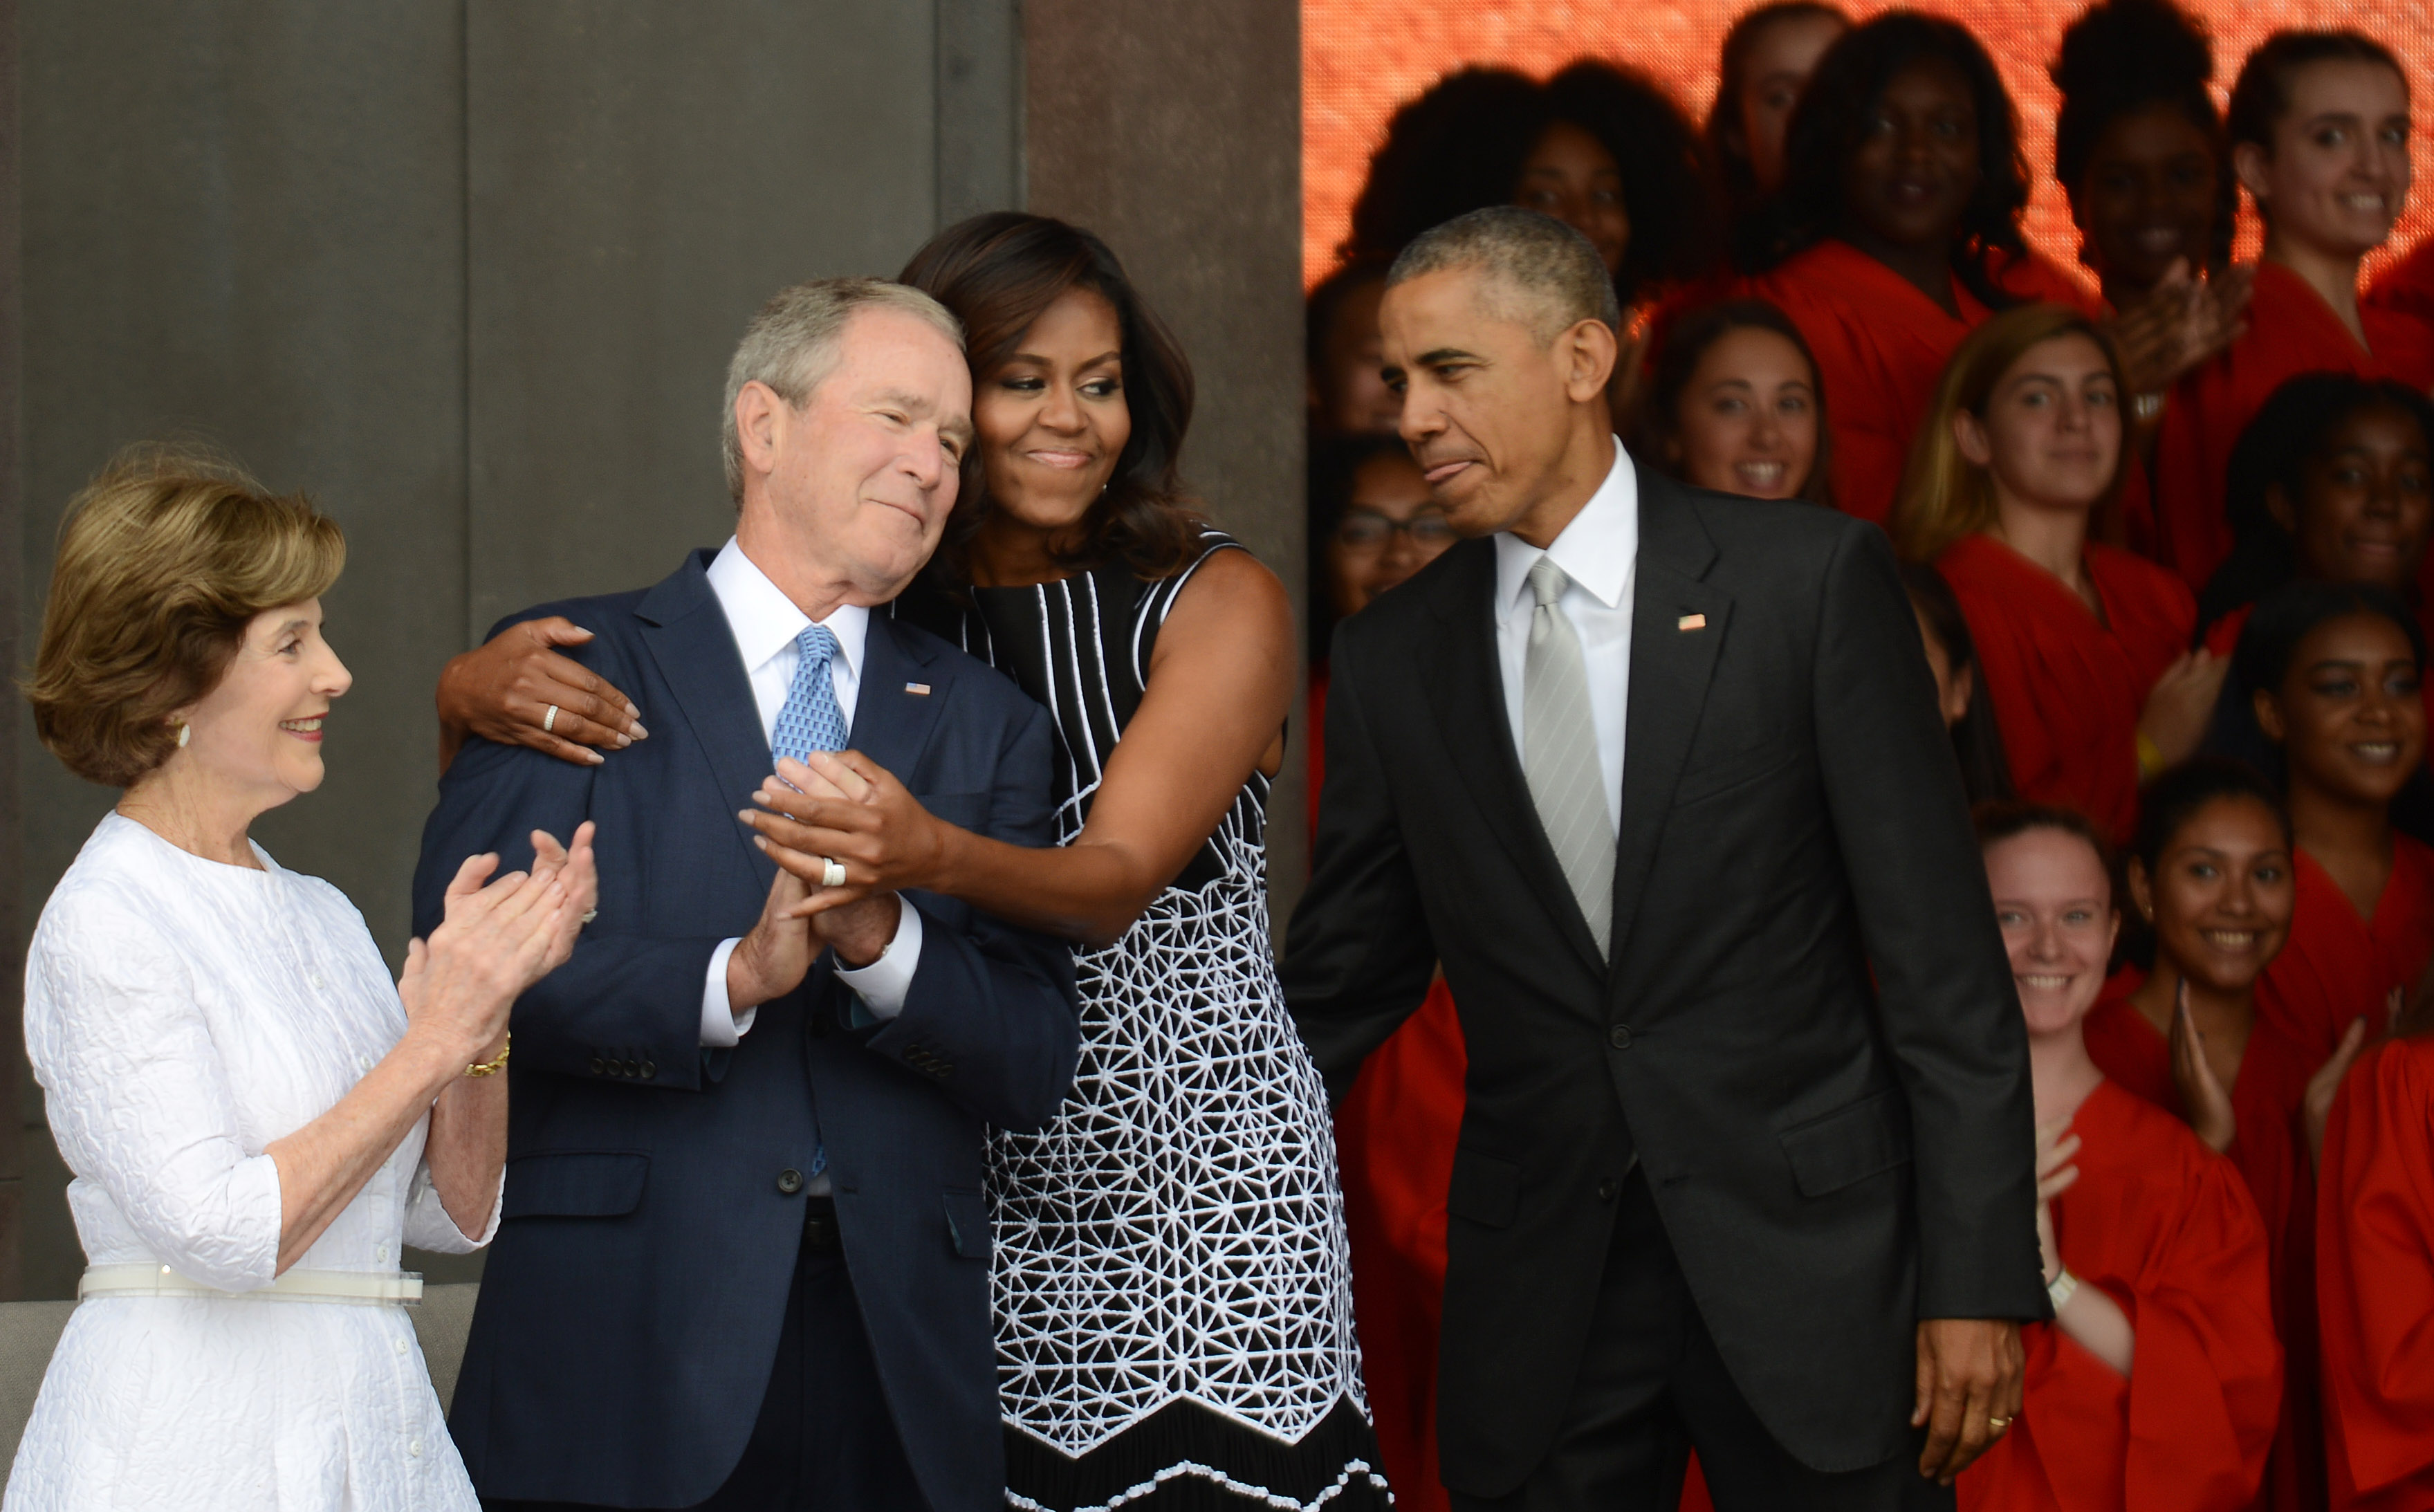 National Museum Of African American History And Culture Opens In Washington, D.C.